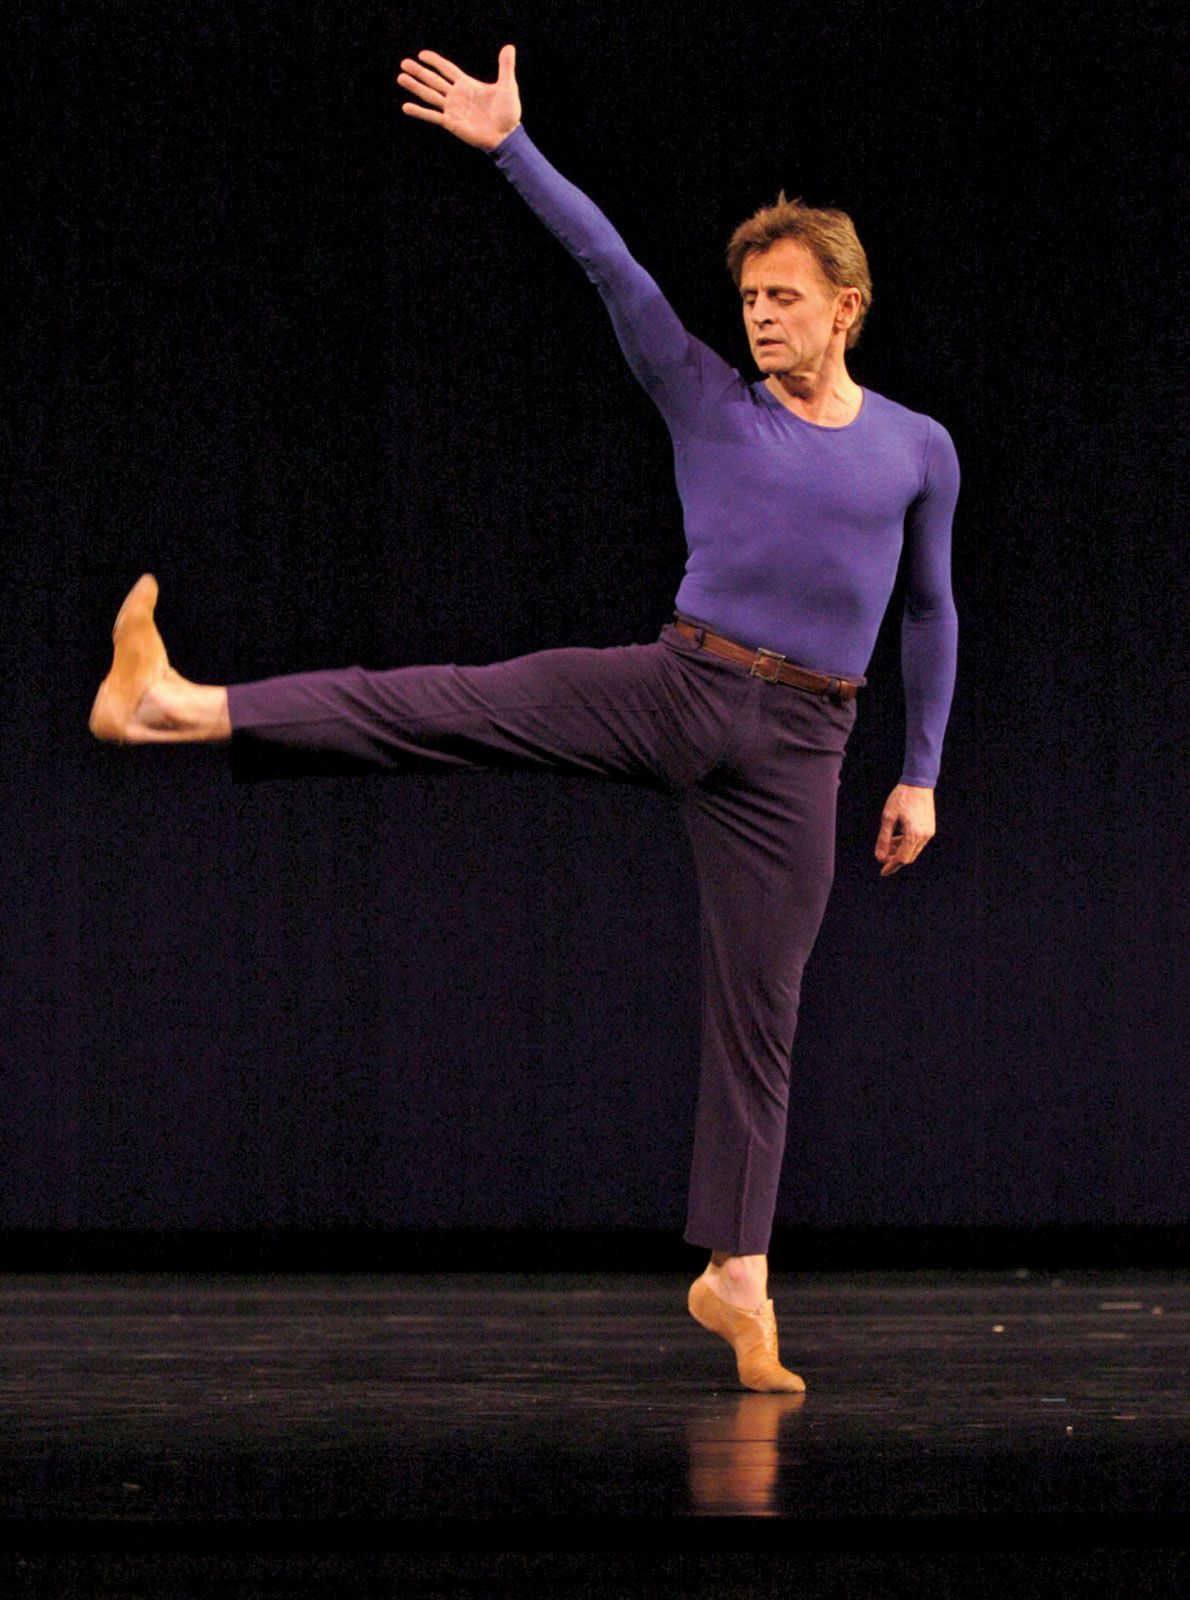 Mikhail baryshnikov   AMAZING male dancer  He hit 26